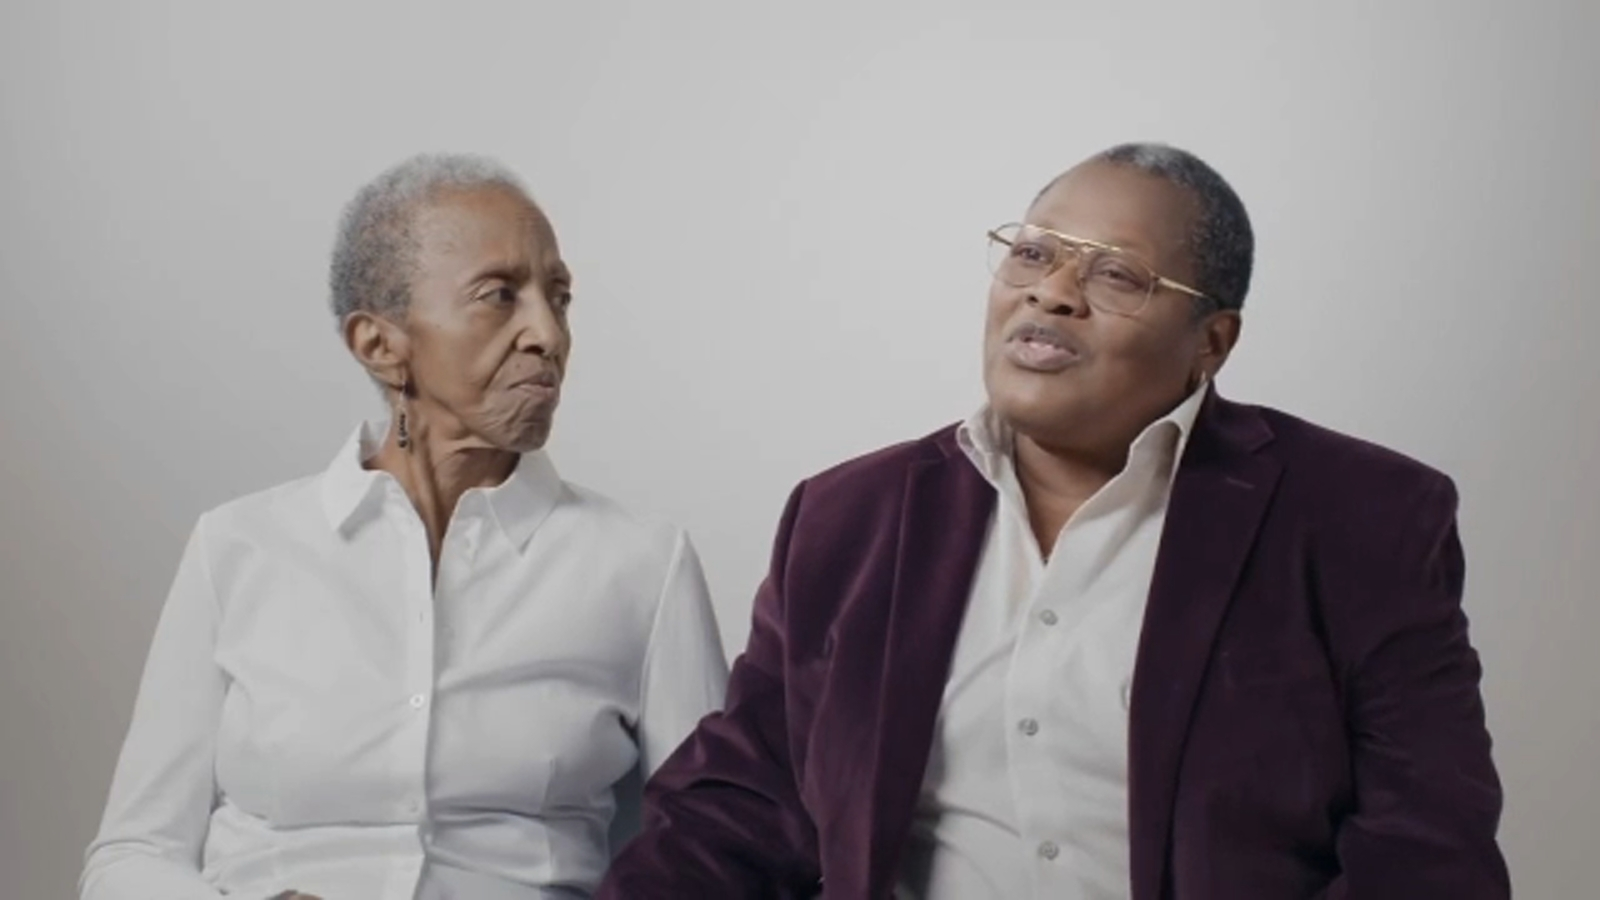 abc7ny.com: LGBTQ seniors share their stories in 'Not Another Second'